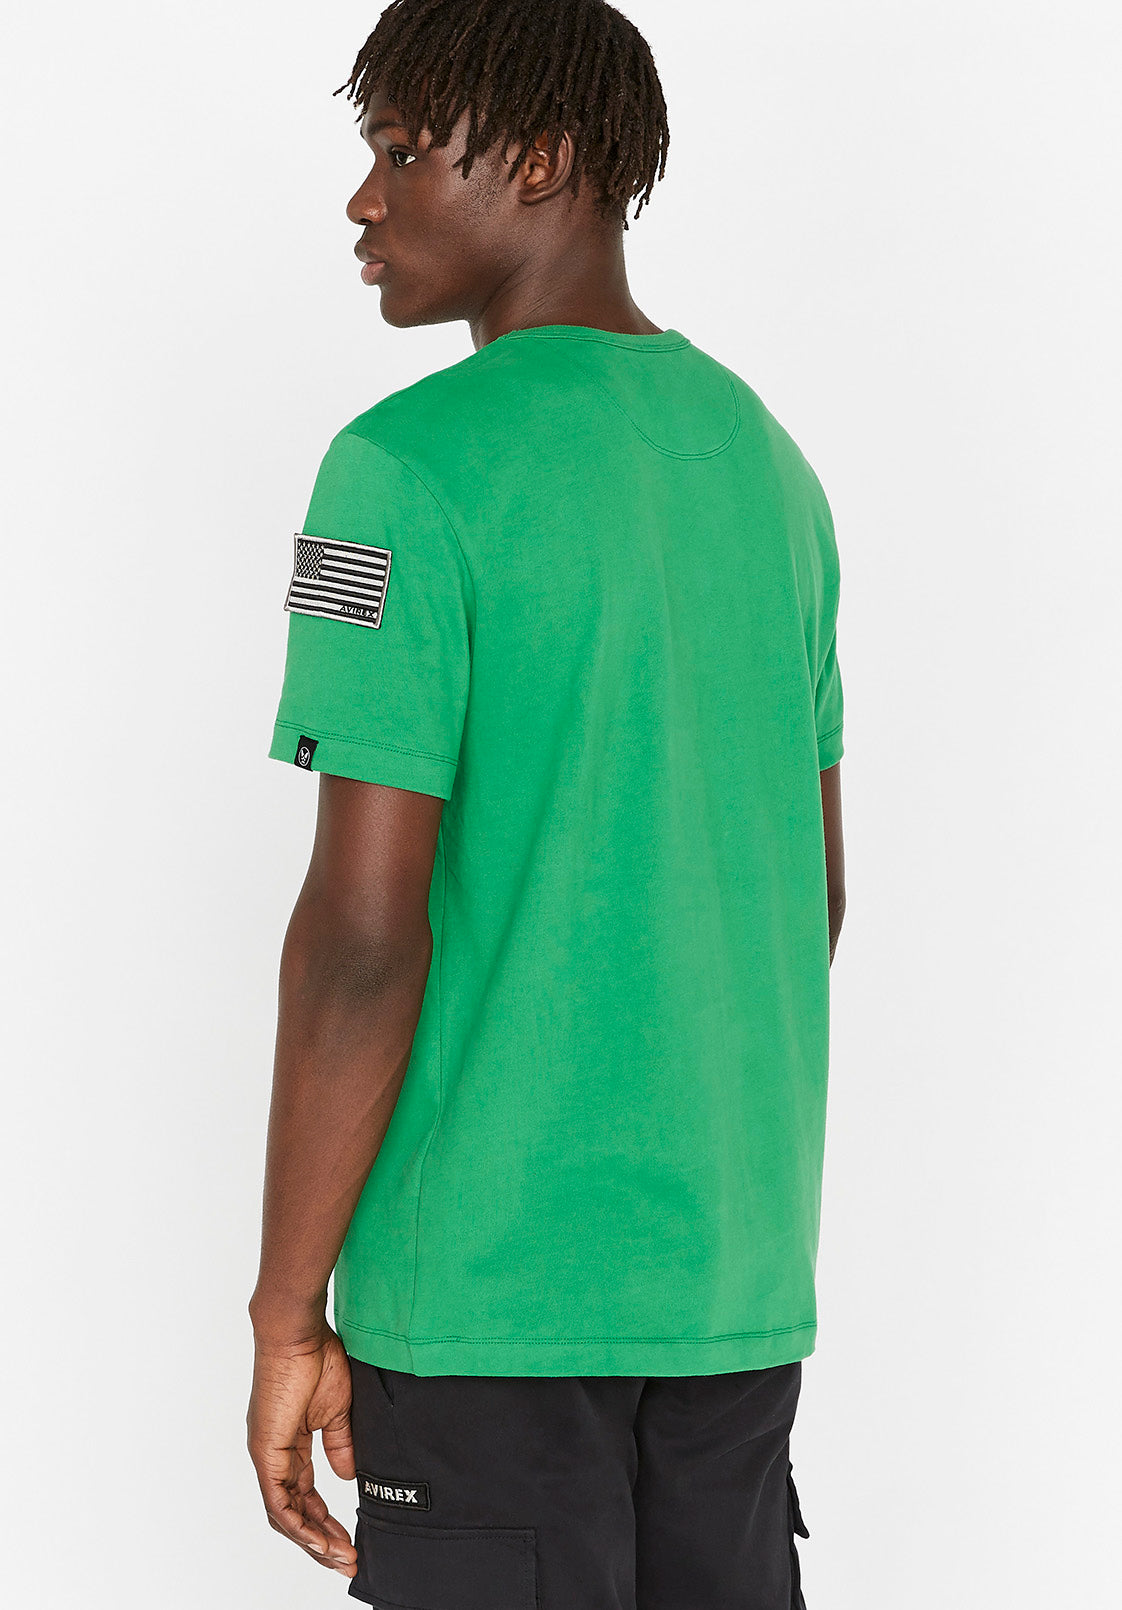 Back view of men wearing a green t-shirt with USA flag patch on left sleeve